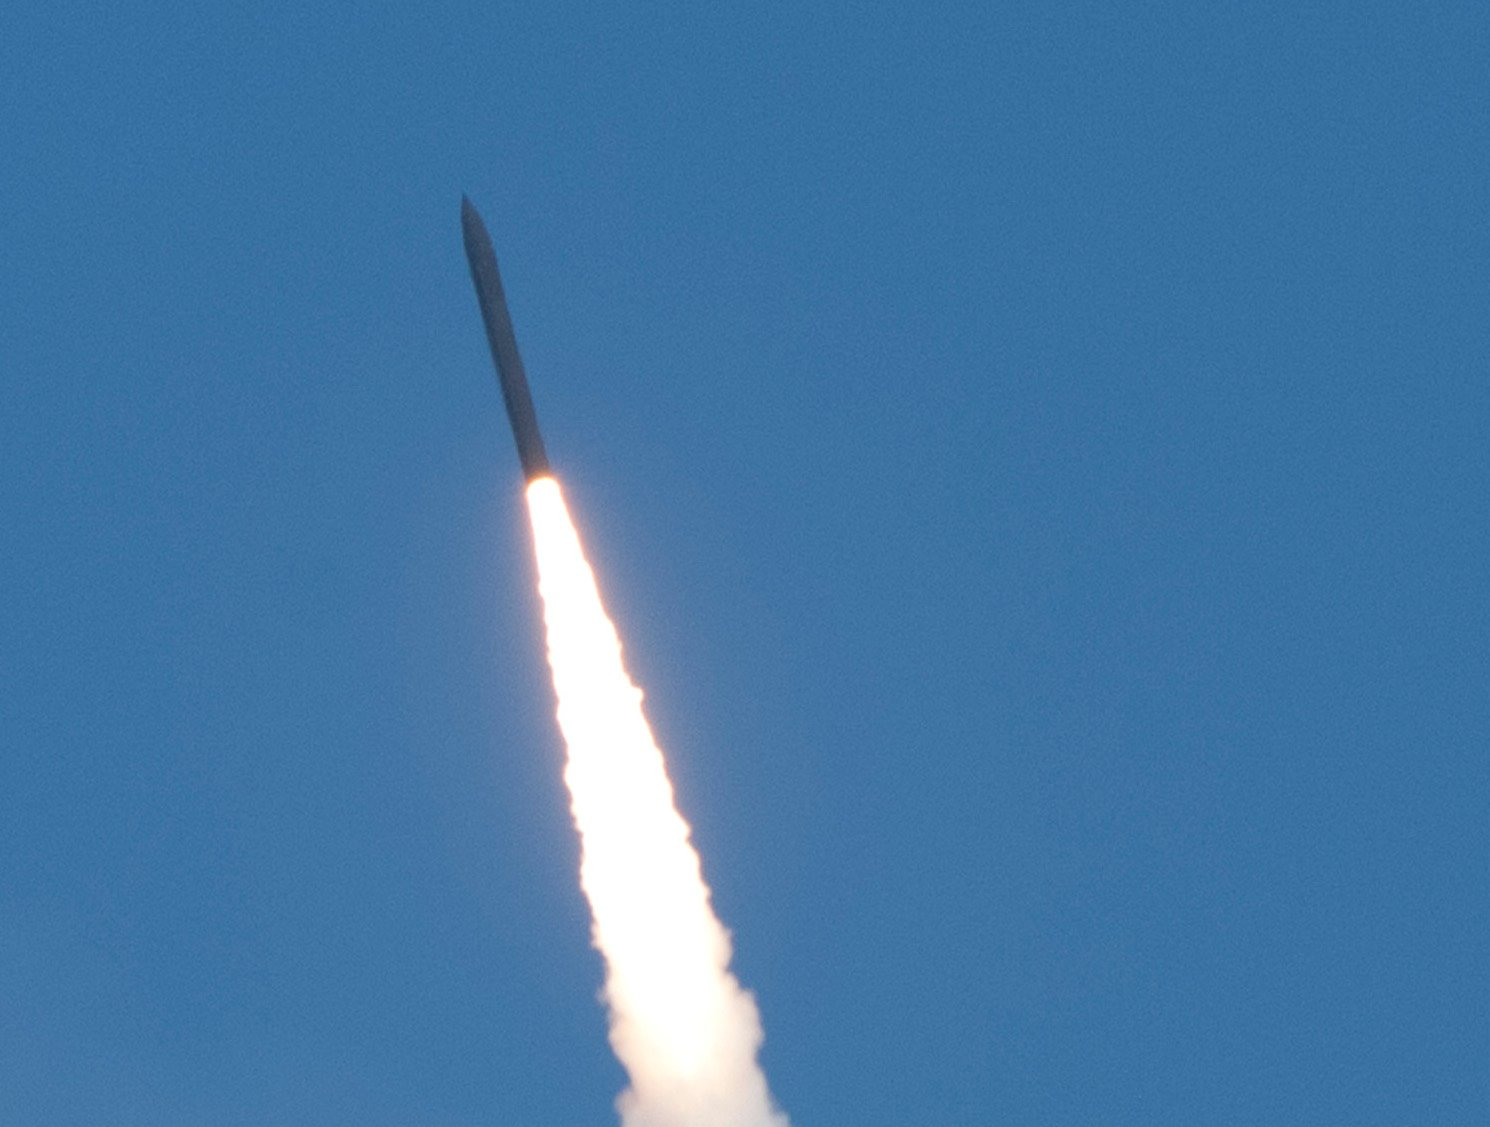 Missile Defense Agency's Flight Test 06b Ground-Based Interceptor launches from Vandenberg Air Force Base, Calif. on June 22, 2014. MDA Photo